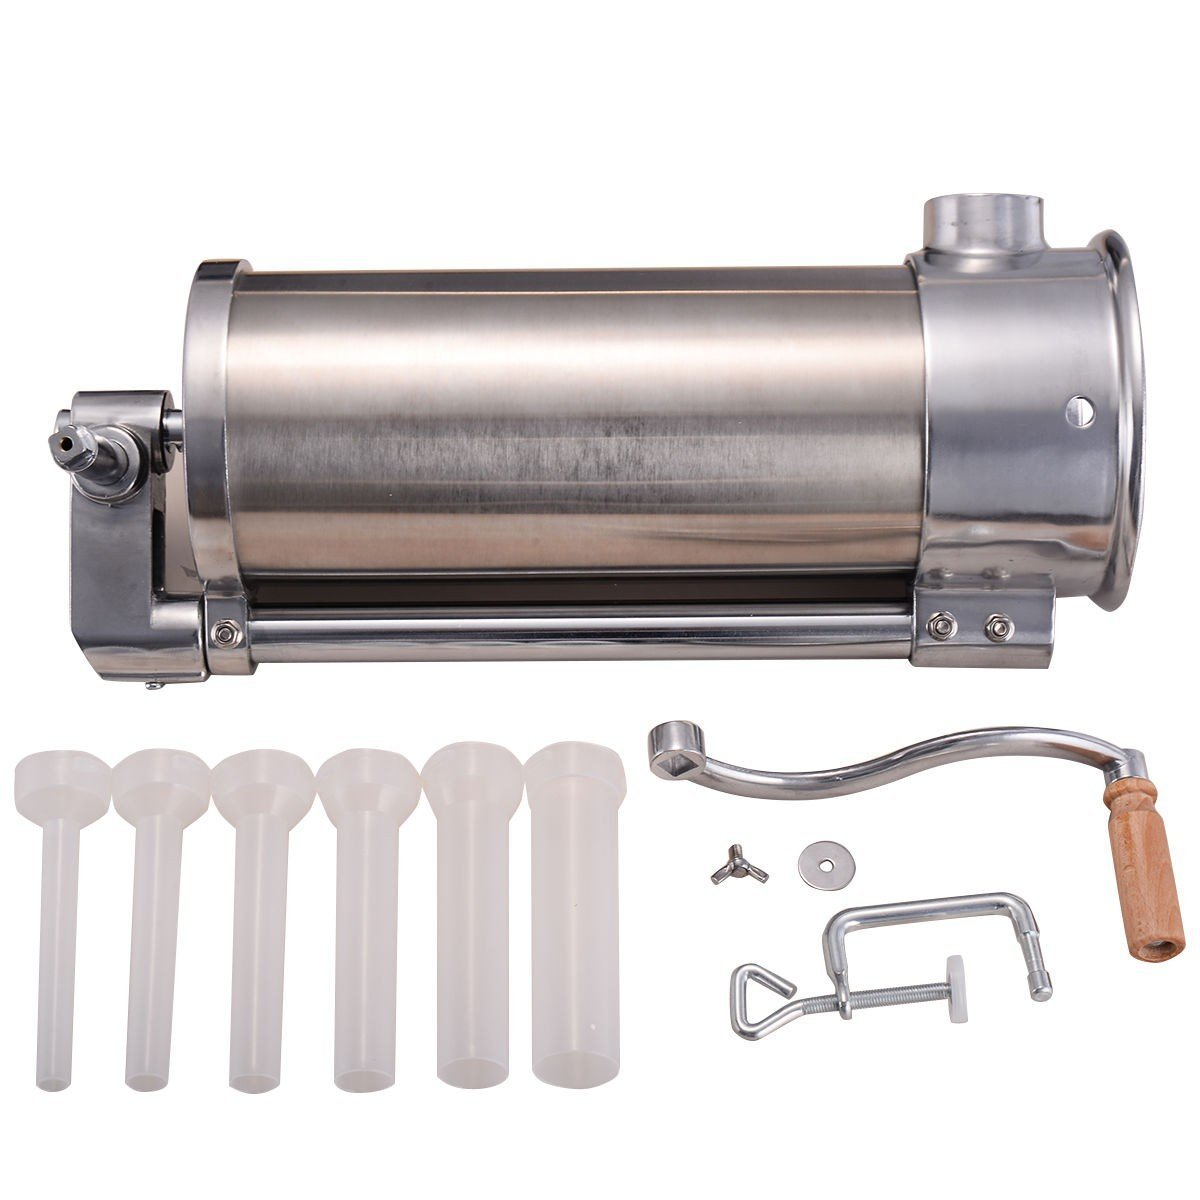 CHOOSEandBUY 6l Sausage Stuffer Maker Stainless Steel 10lb Meat Filler Commercial Restaurant 10 Lbs Easy Use Salami Hand Manual Funnel Operated